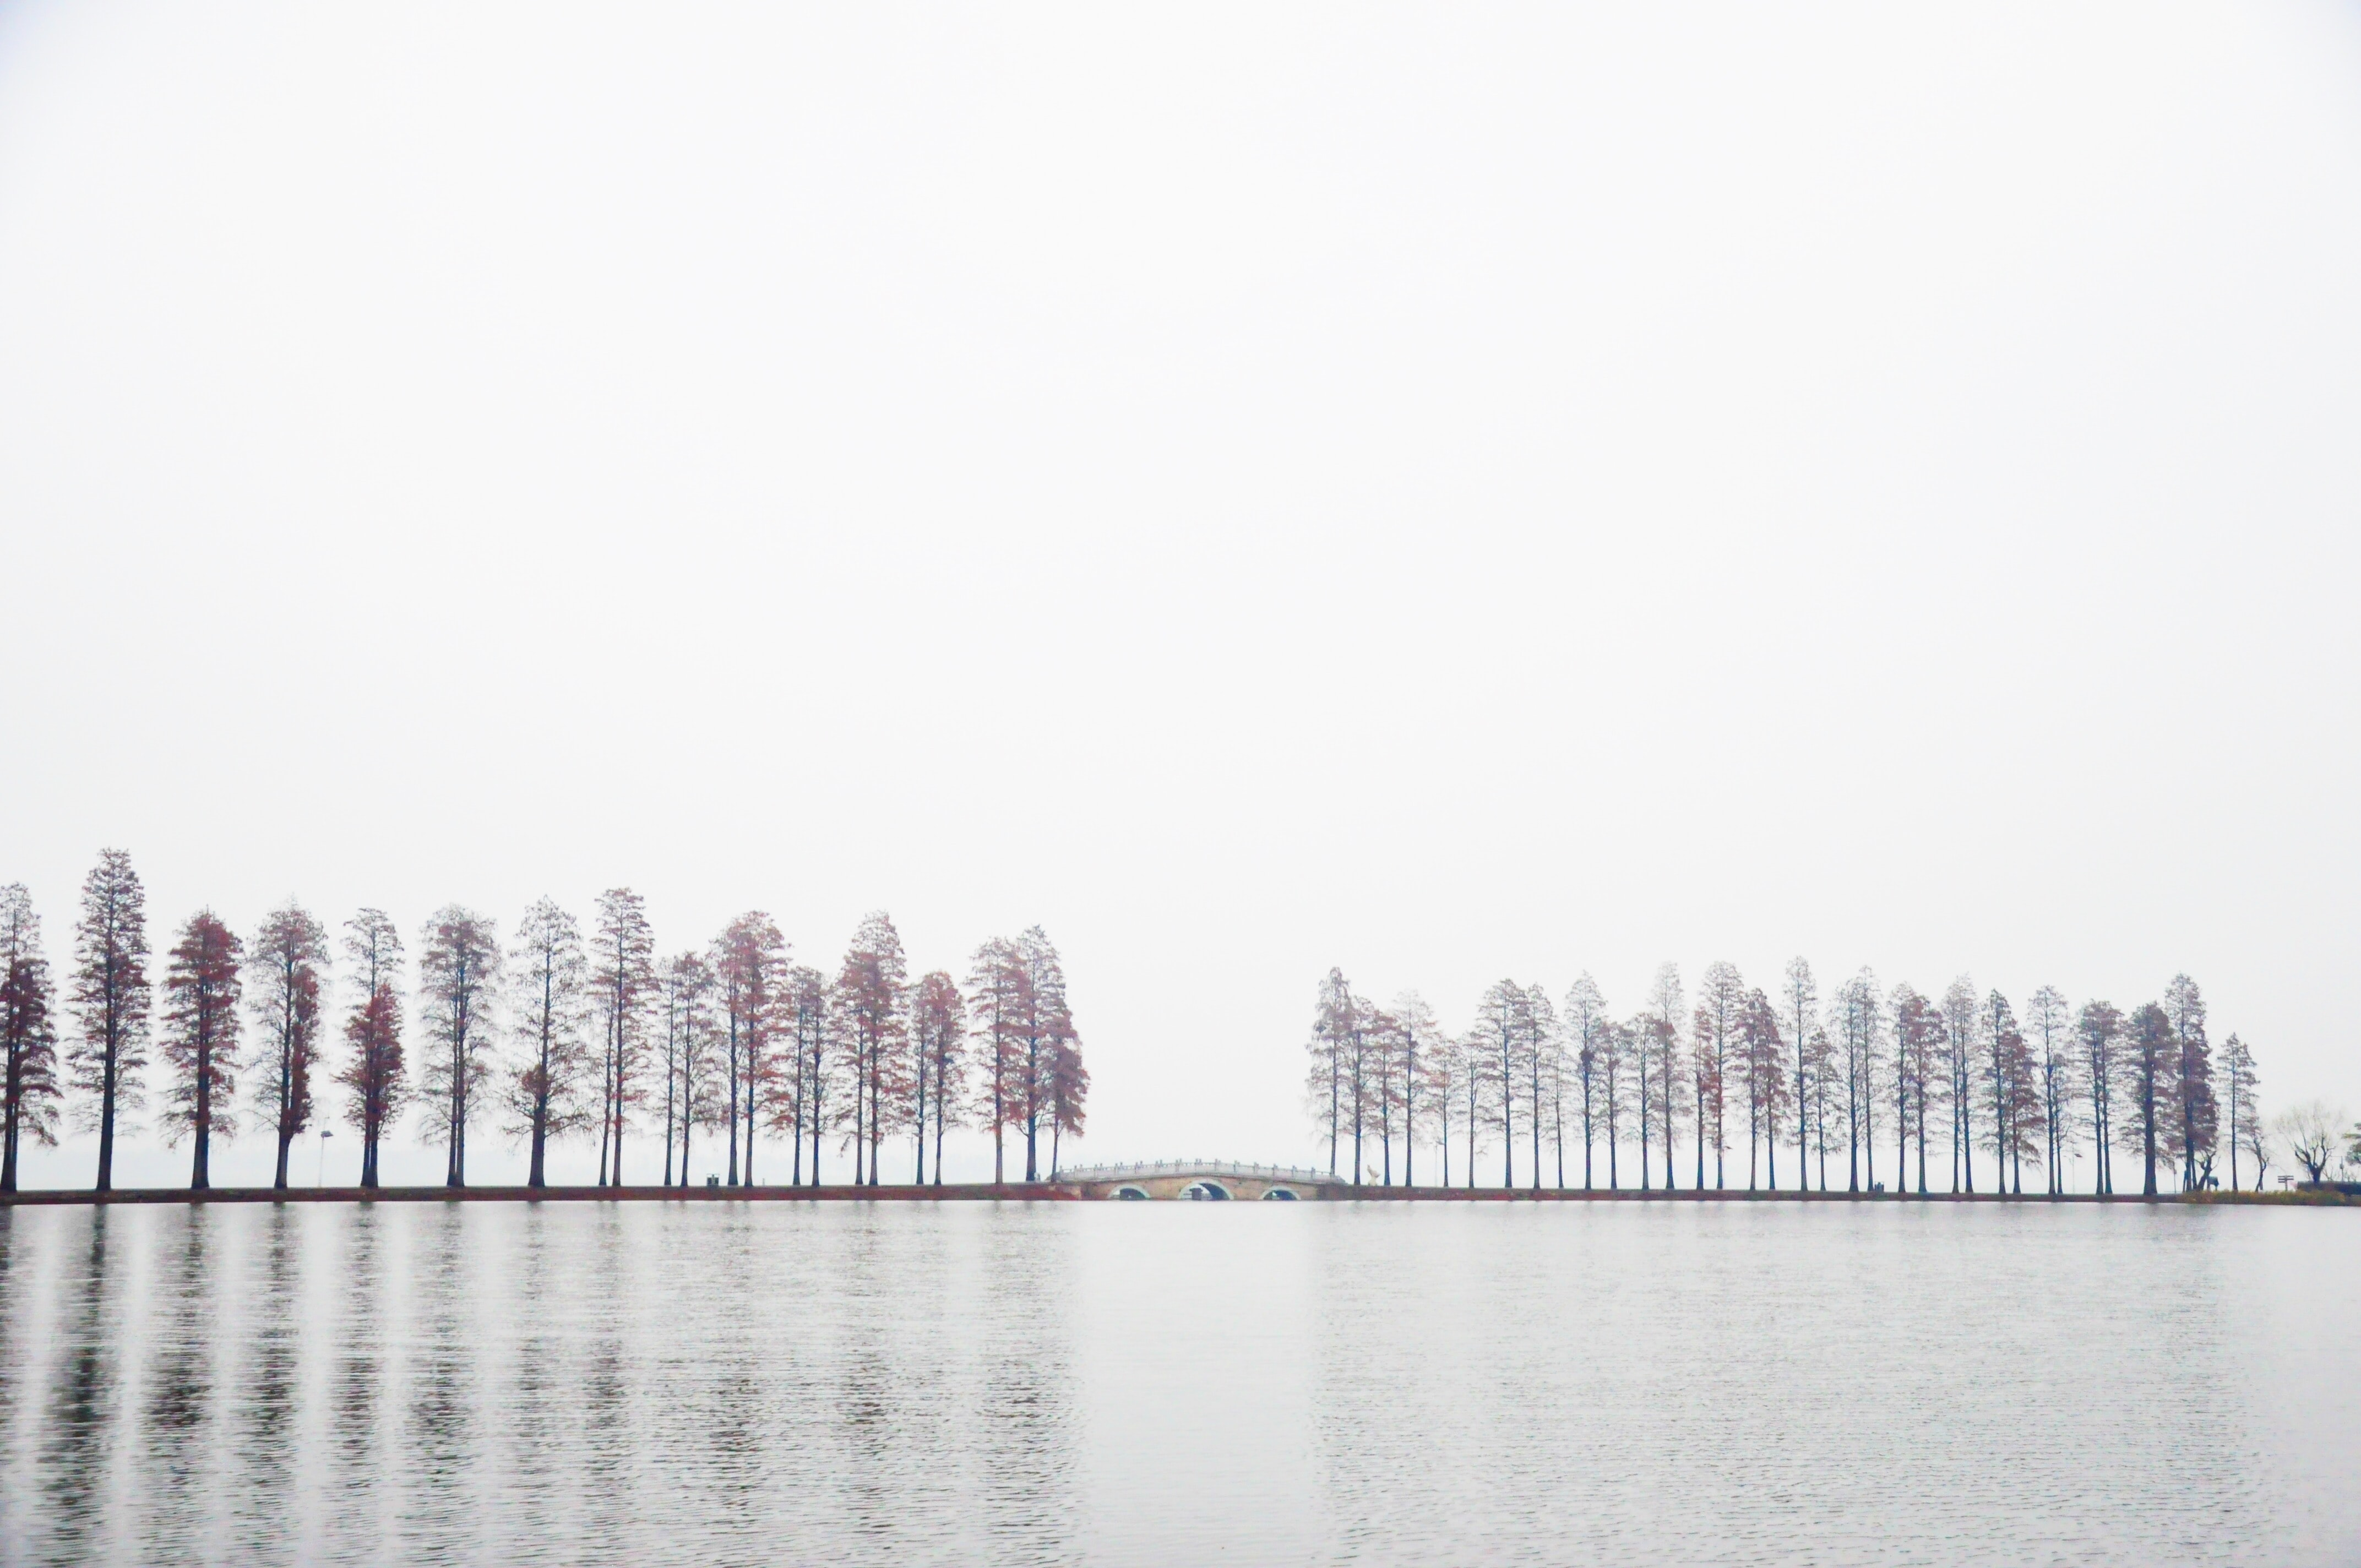 trees on shore during grey sky